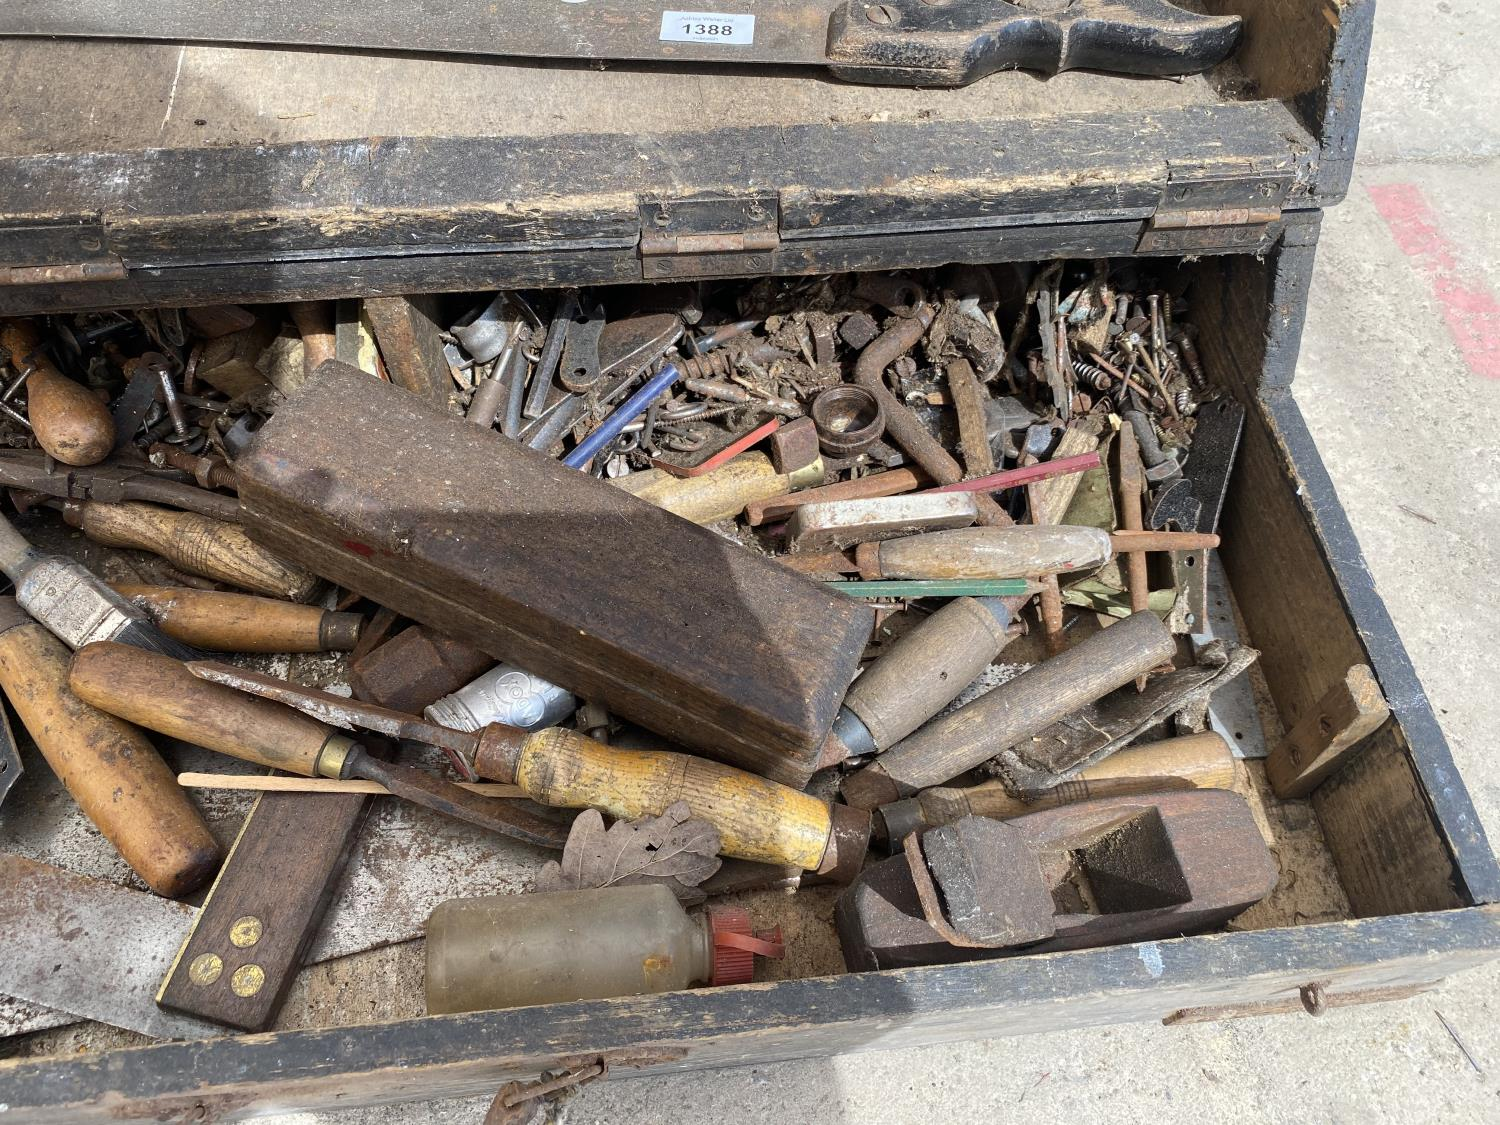 A VINTAGE JOINERS CHEST WITH AN ASSORTMENT OF TOOLS - Image 2 of 4